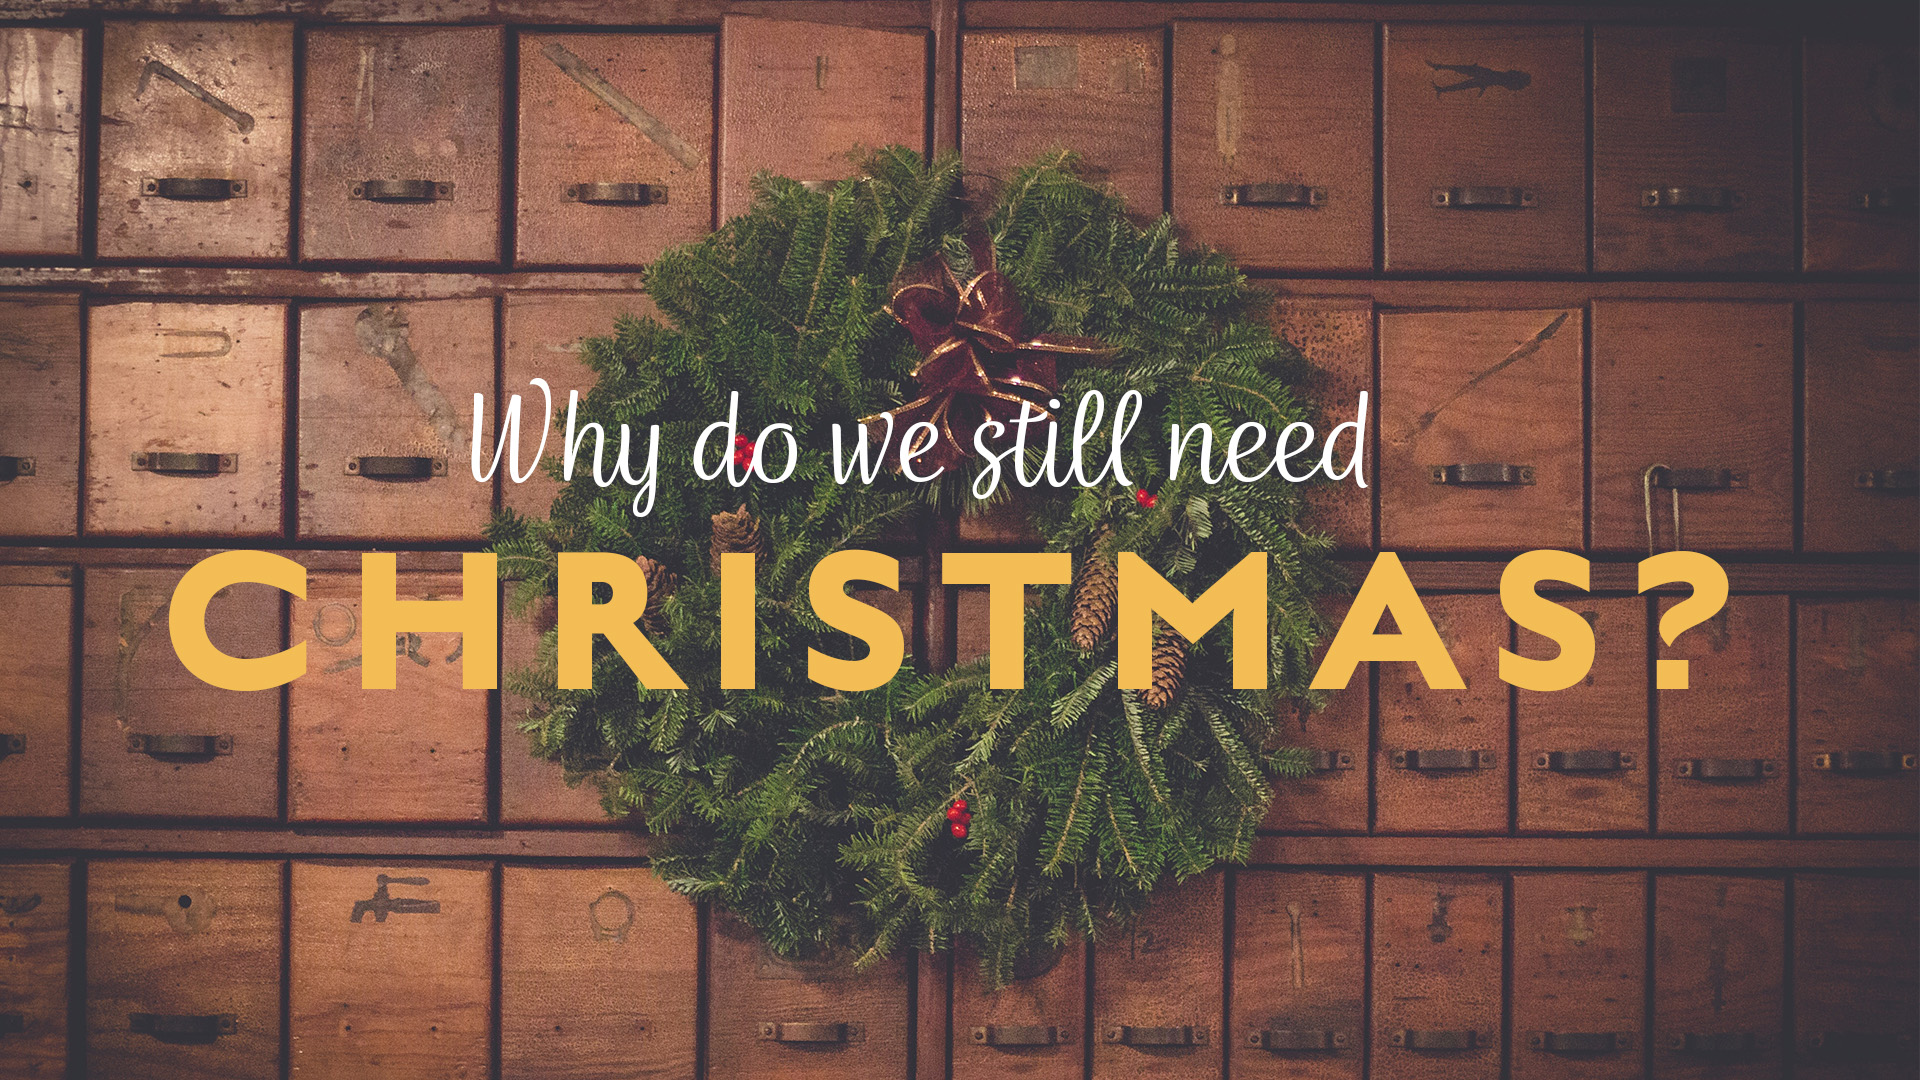 WHY DO WE STILL NEED CHRISTMAS? - We Need Peace in Conflict